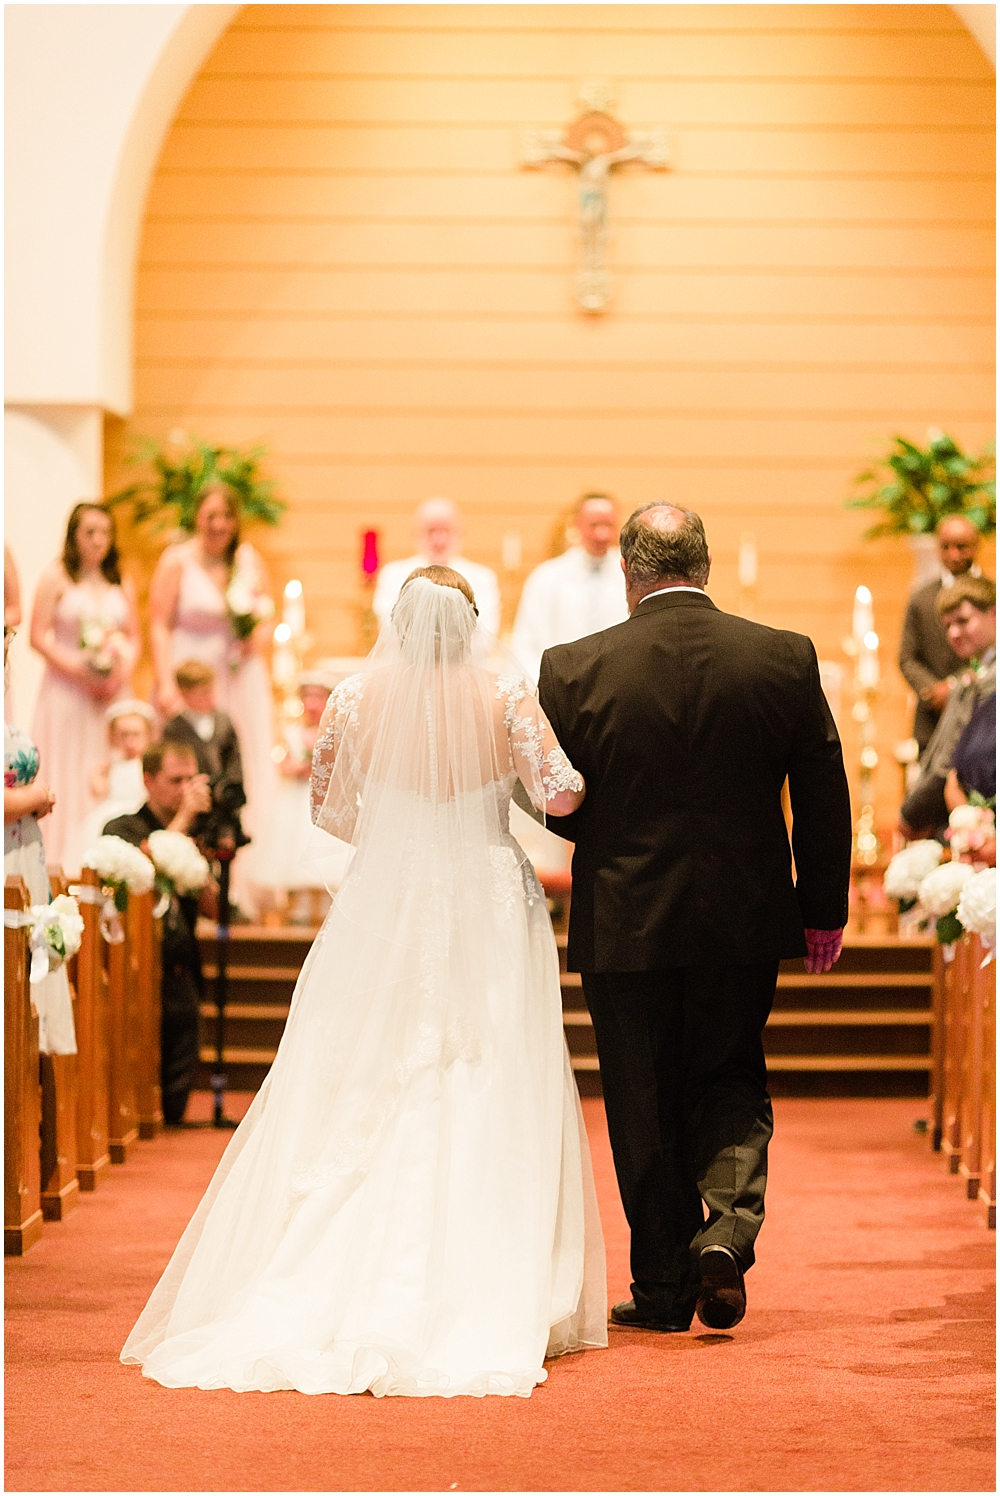 Ashton-Clark-Photography-Wedding-Portrait-Family-Photographer-Mobile-Alabama_0062.jpg